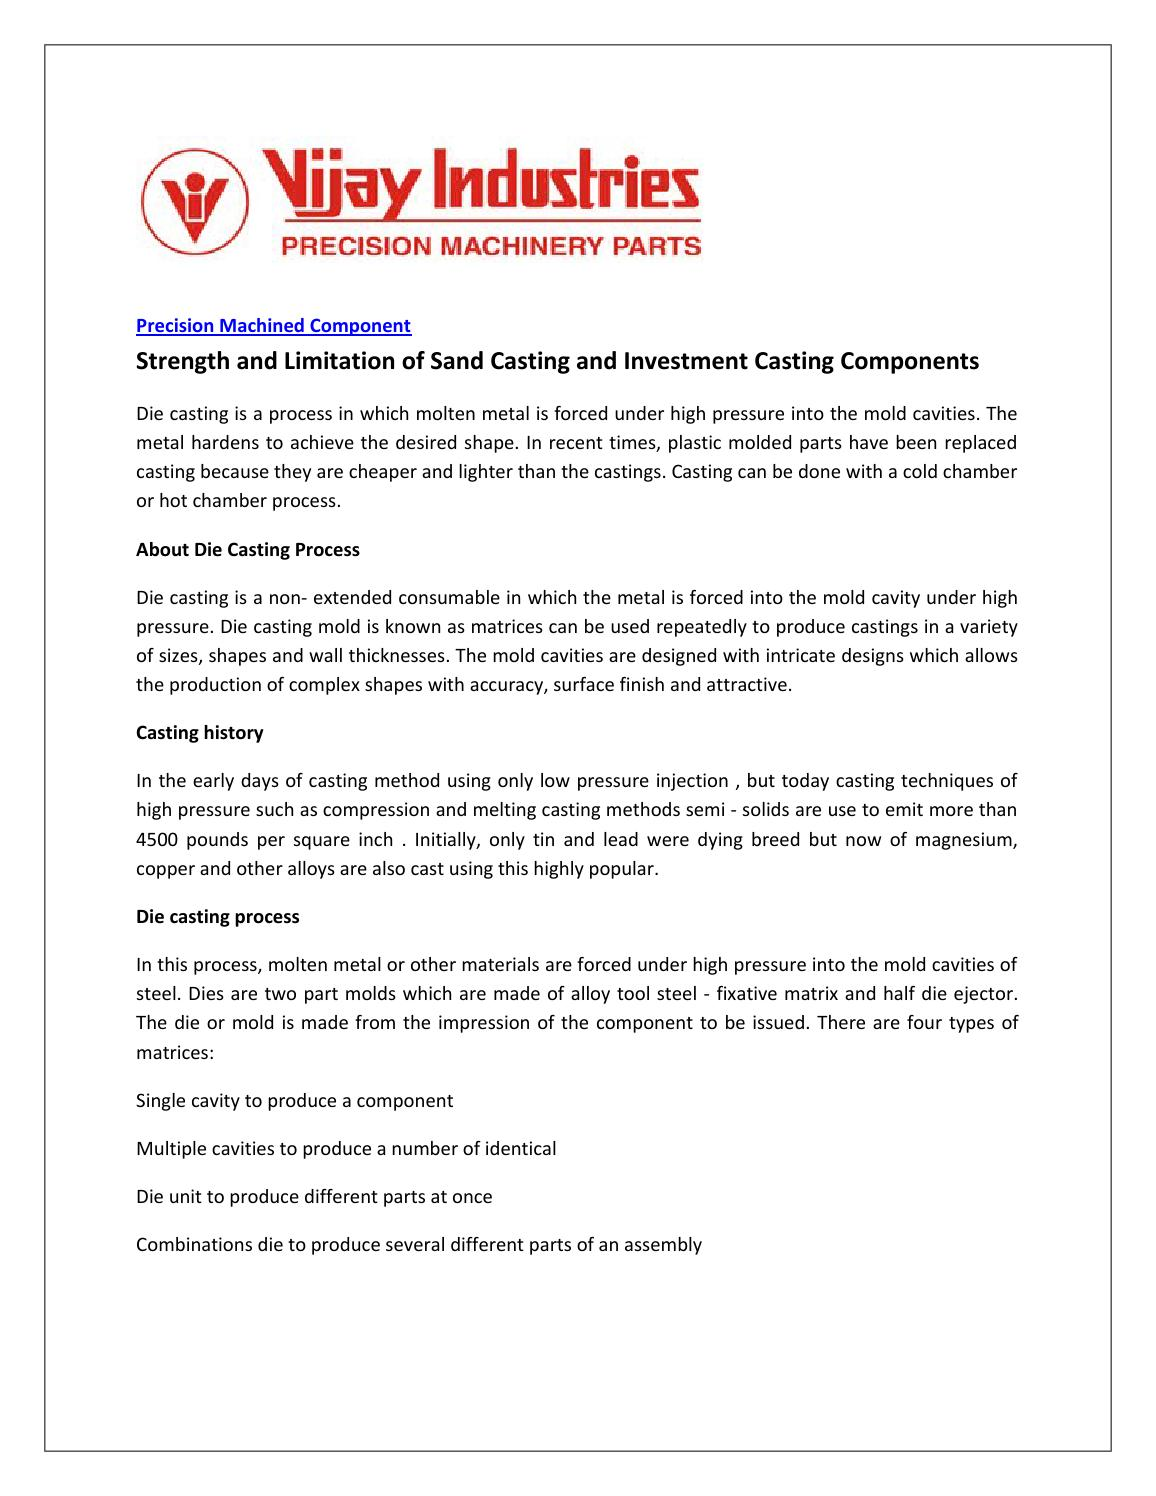 Strength and Limitation of Sand Casting and Investment